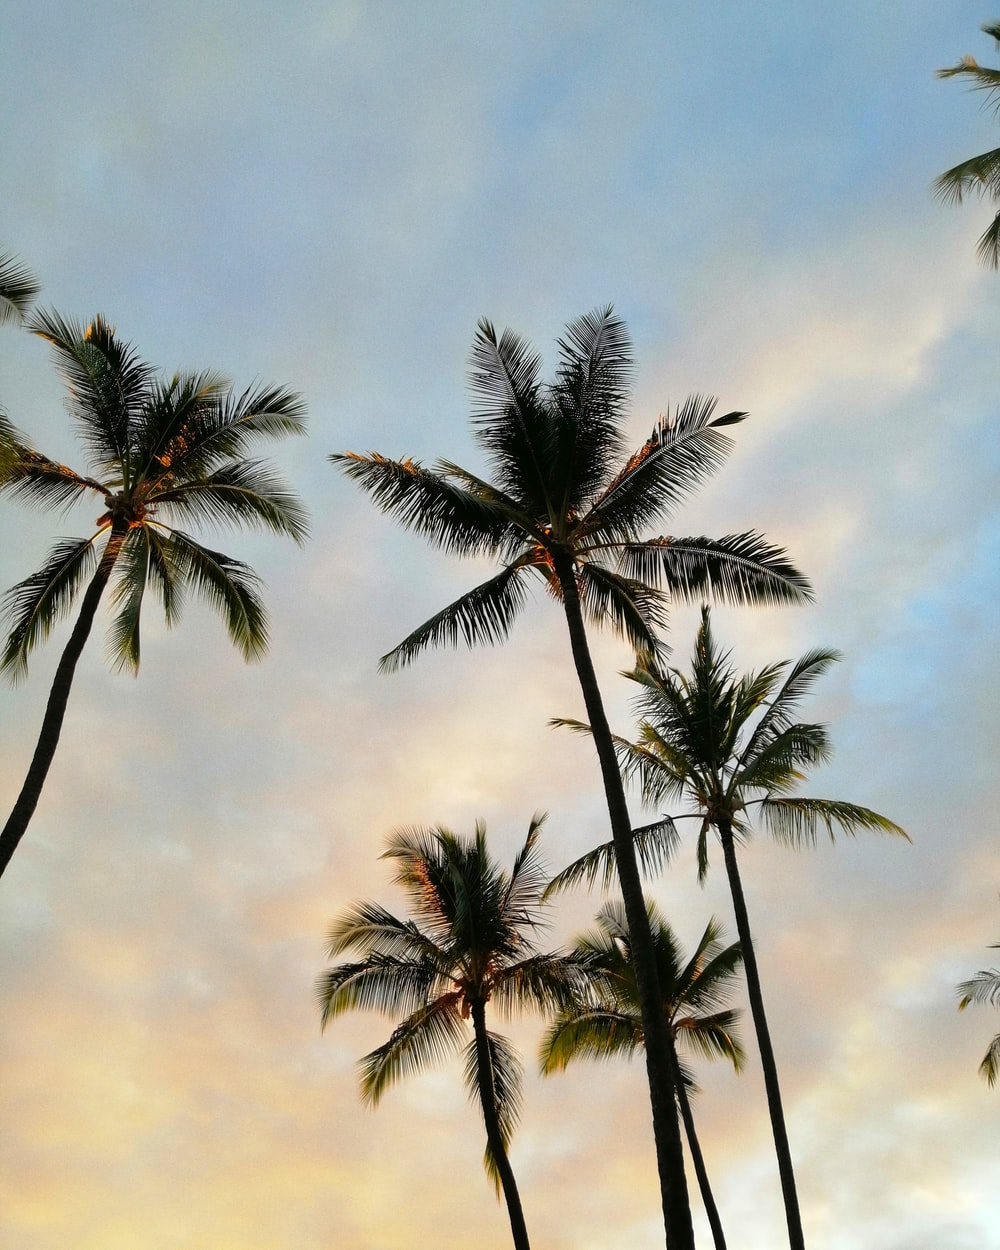 low-angle photography of coconut trees under blue and white skies